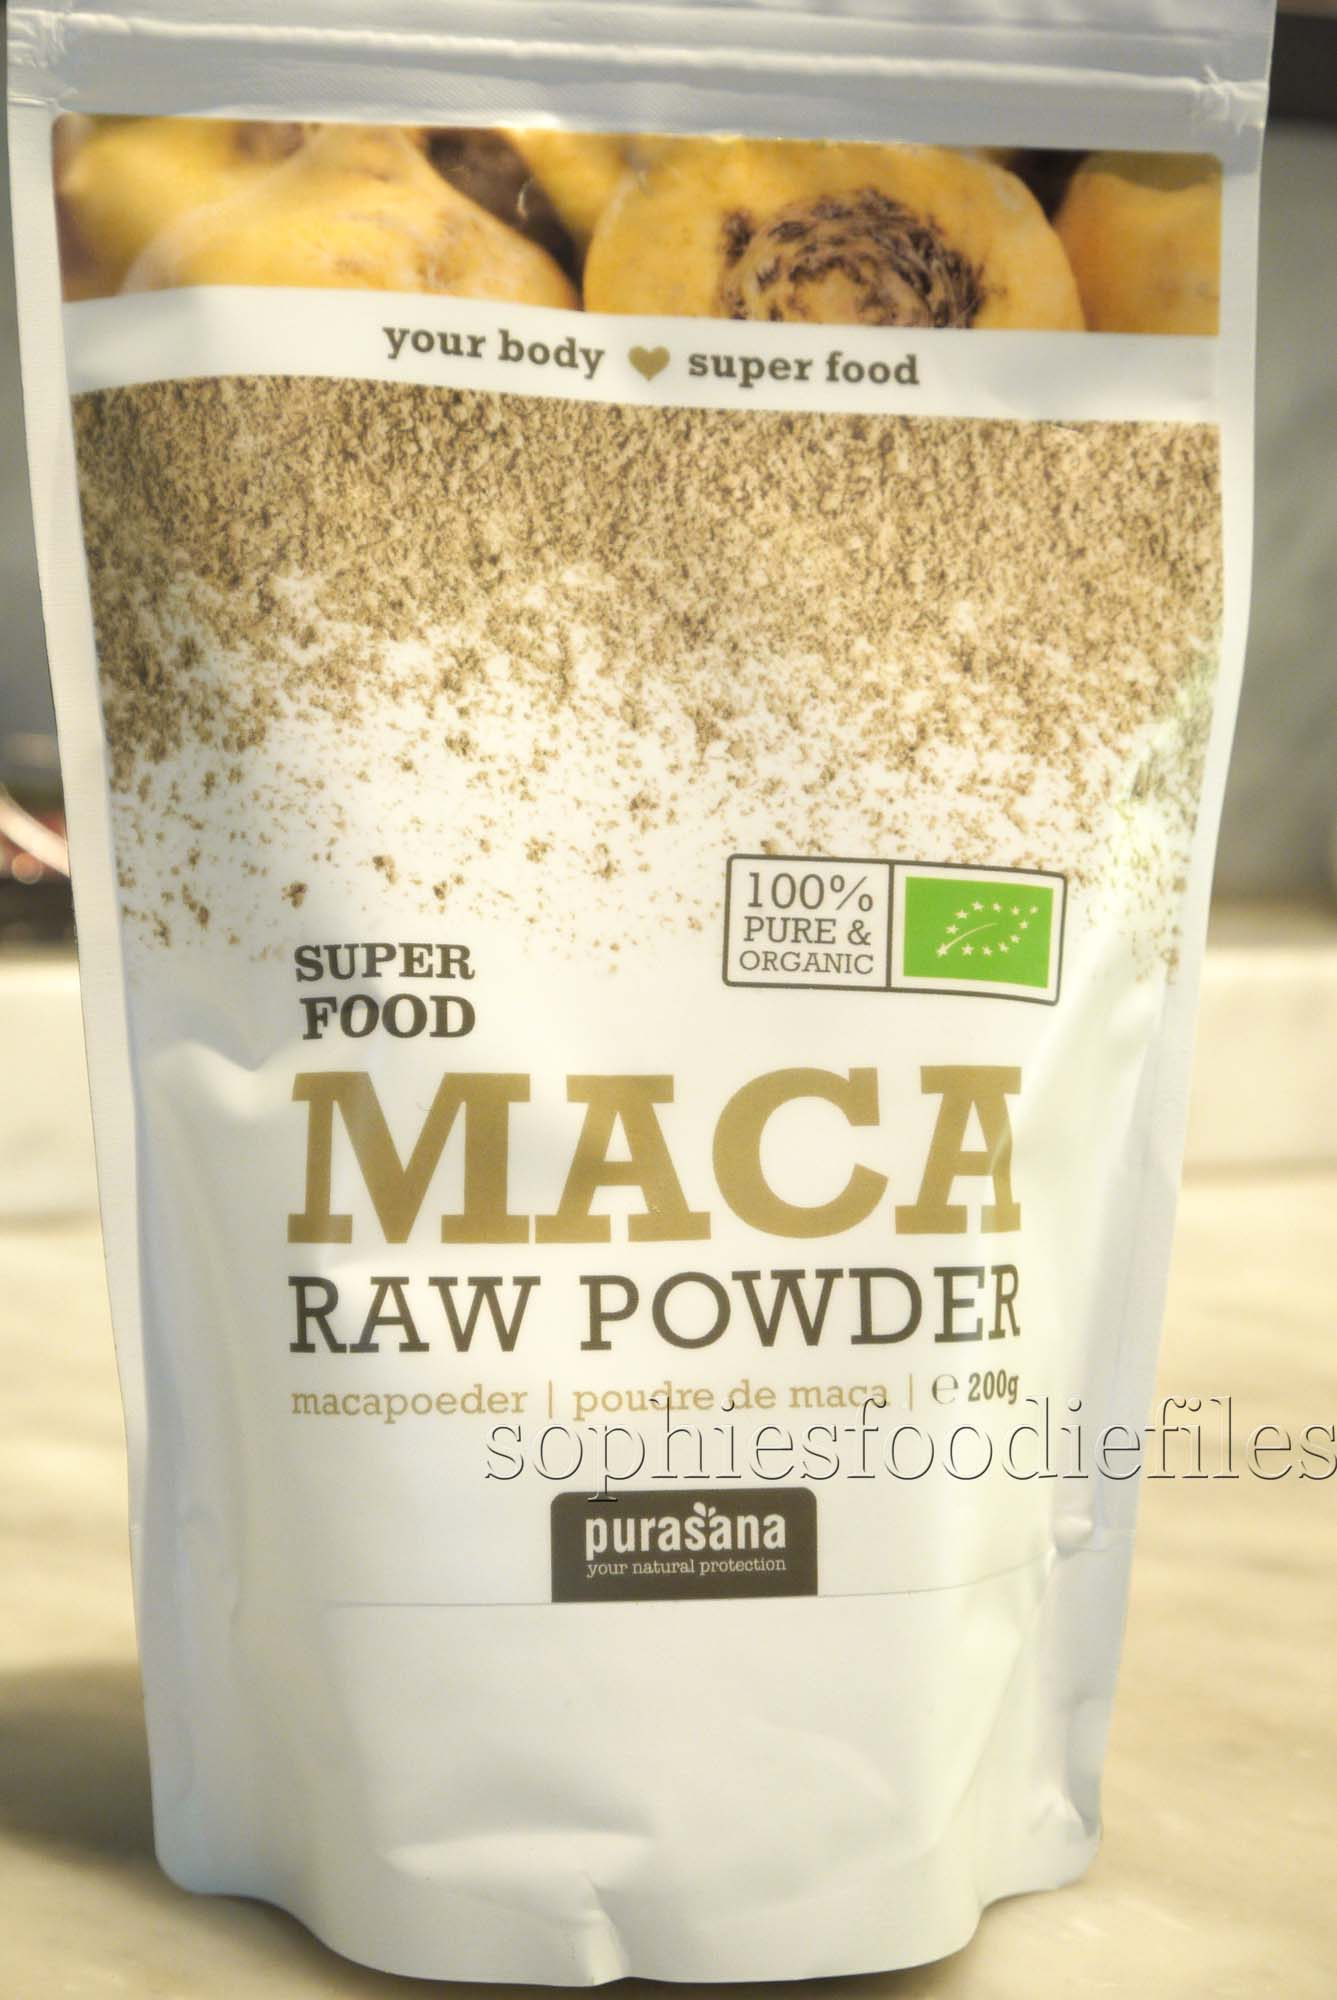 Superfood maca powder